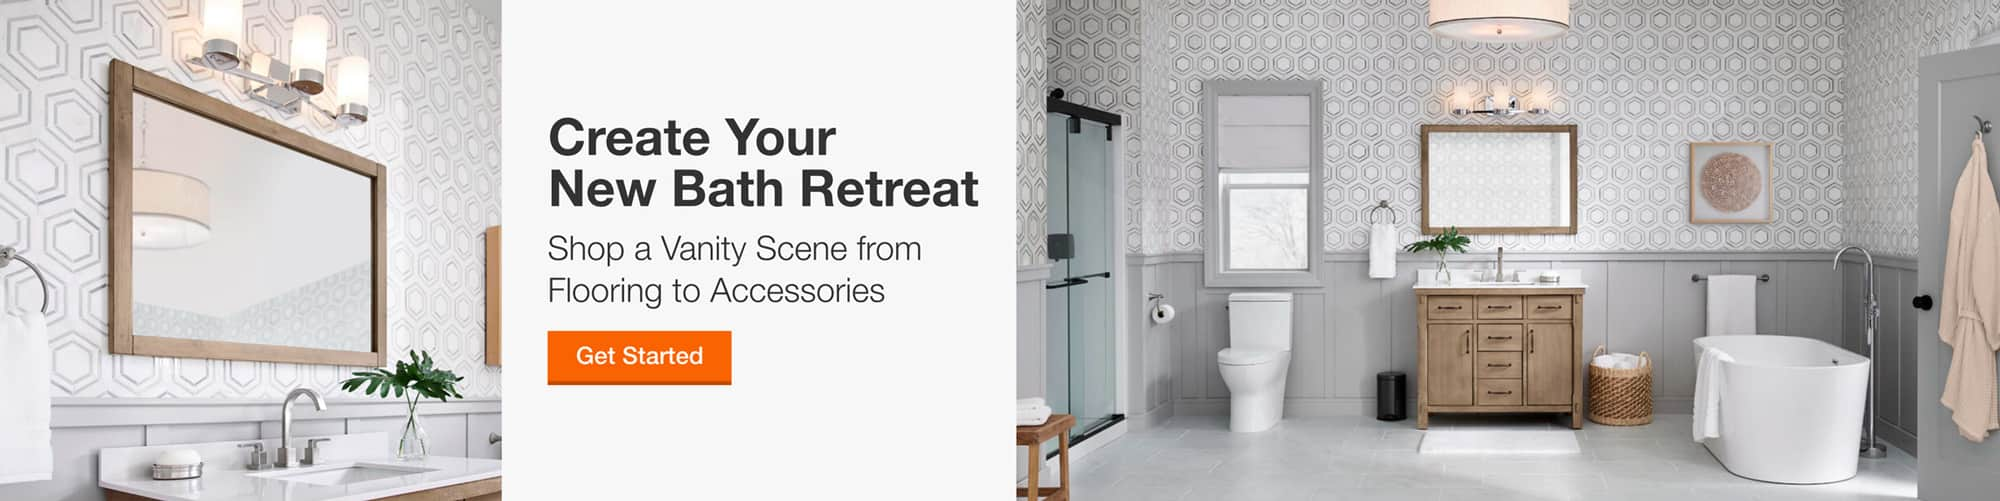 Shop a Vanity Scene from  Flooring to Accessories